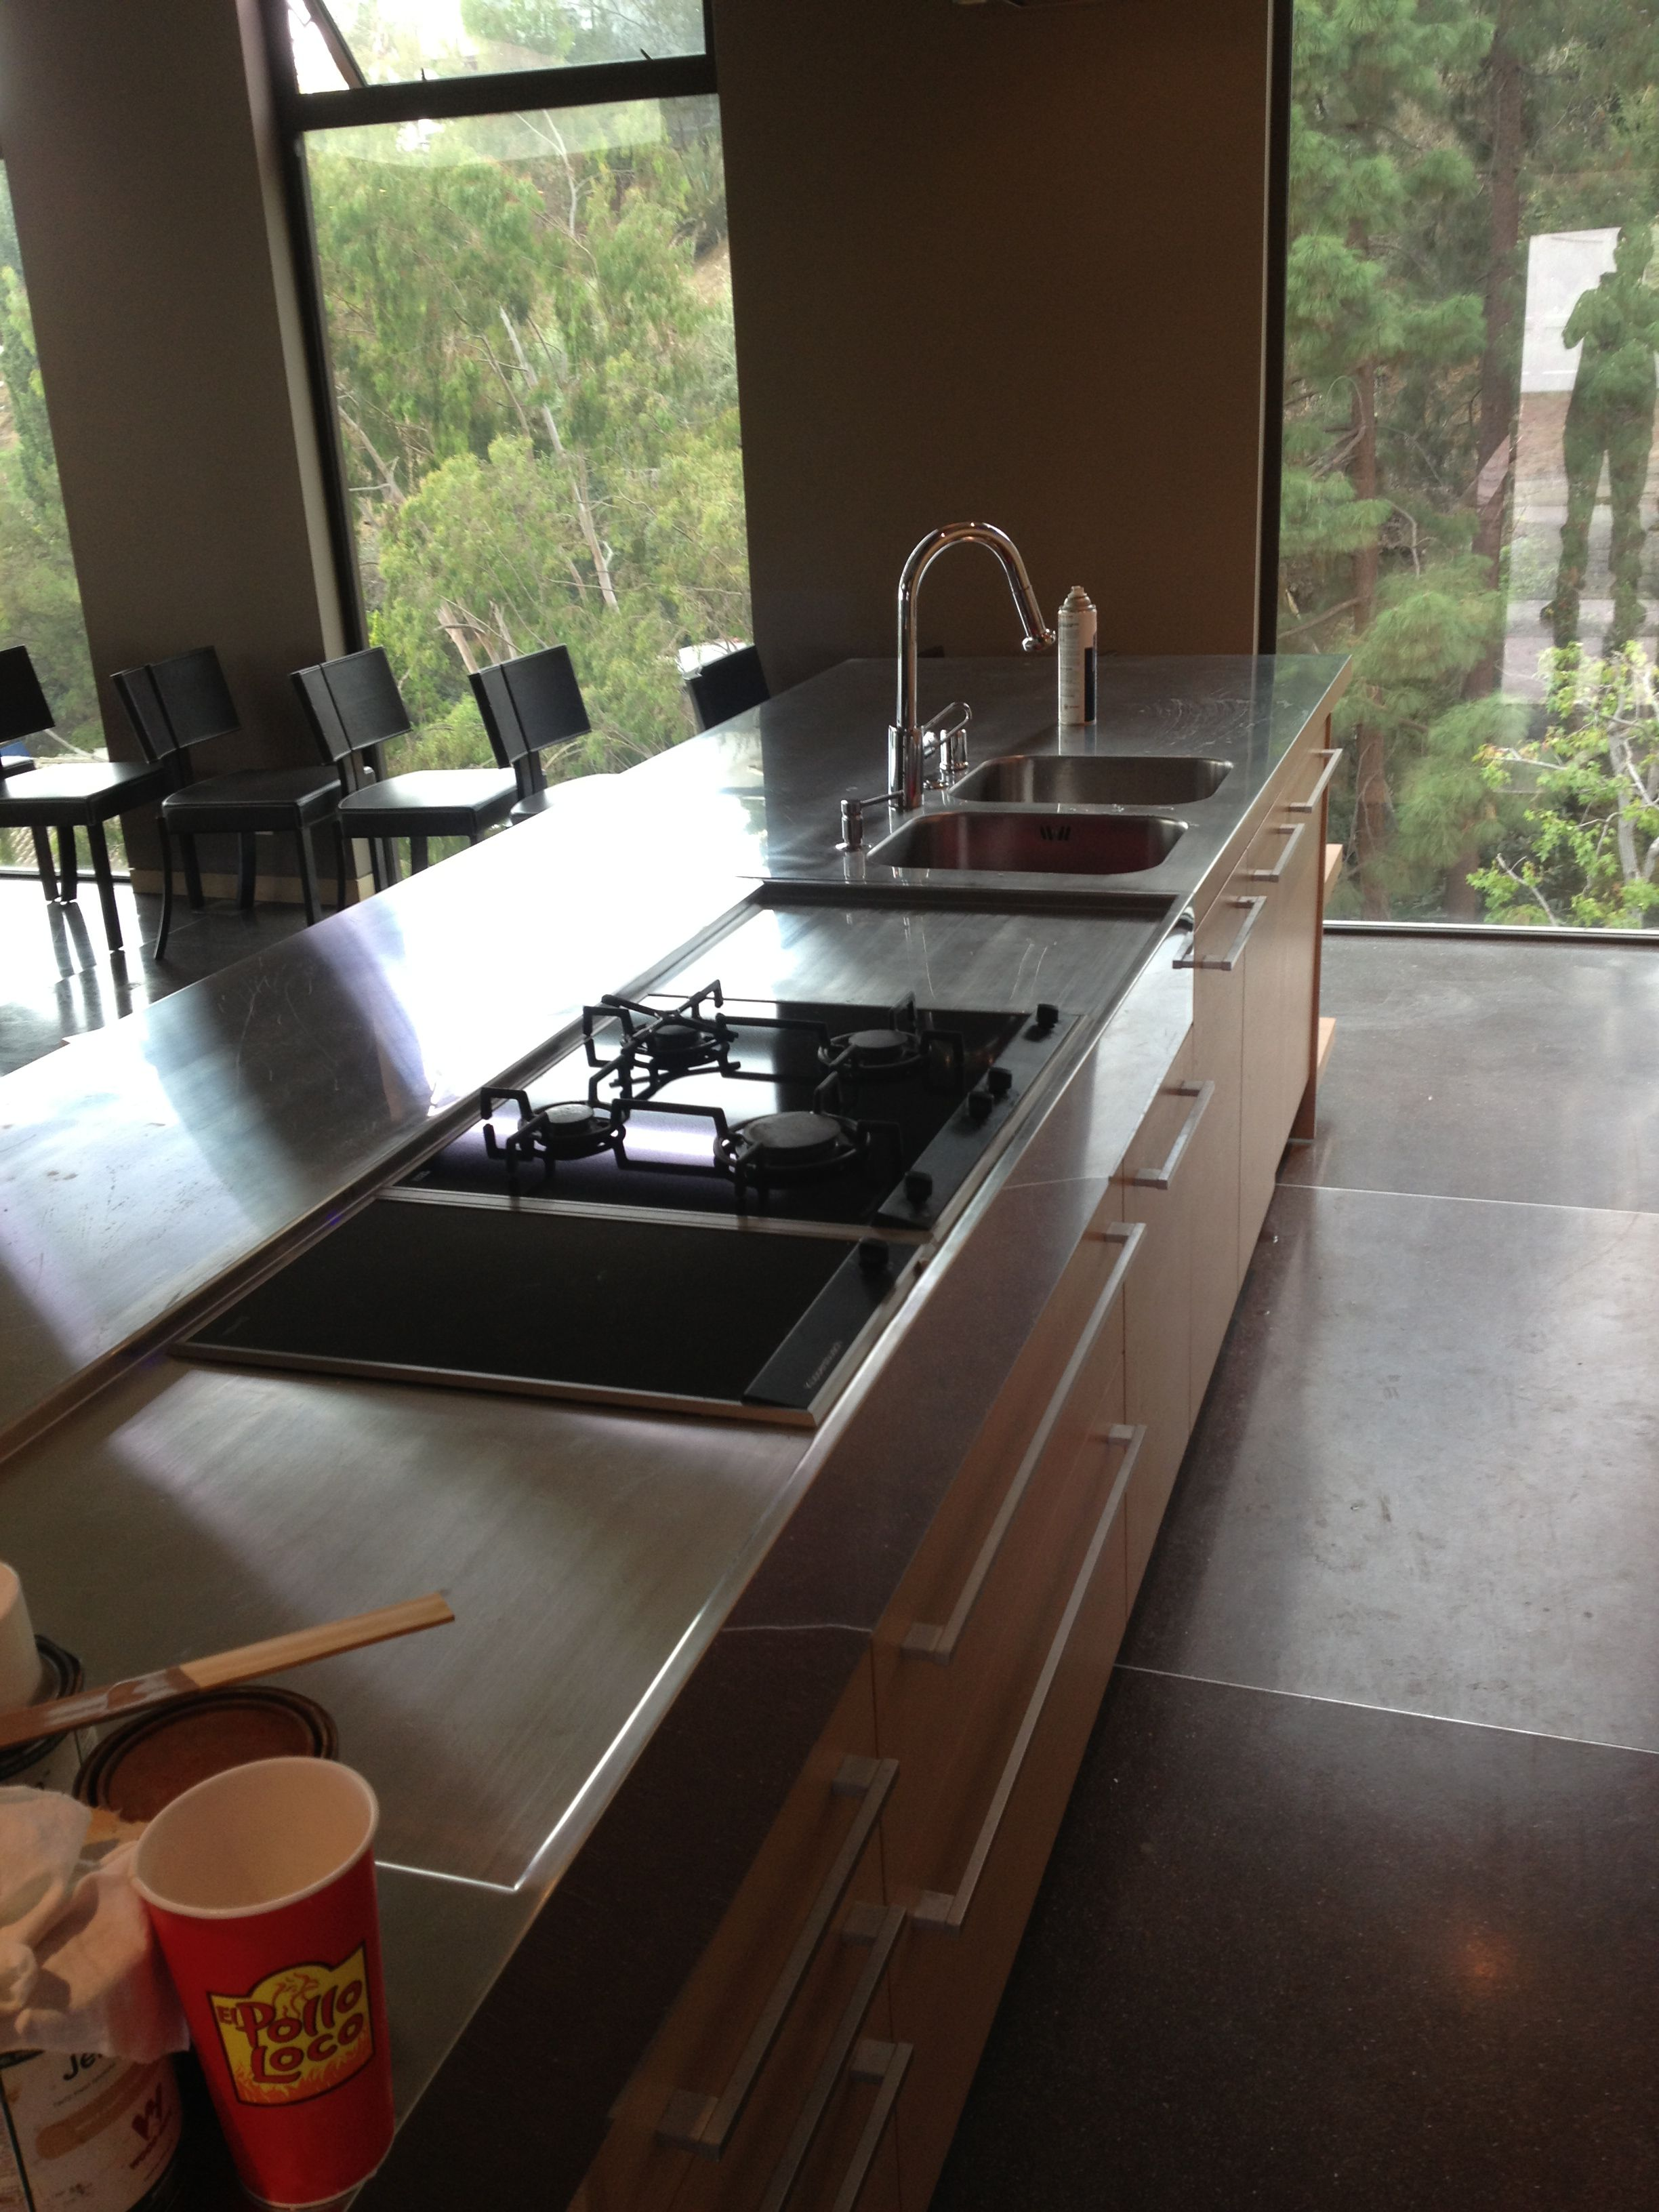 stainless steel countertop Stainless steel countertops